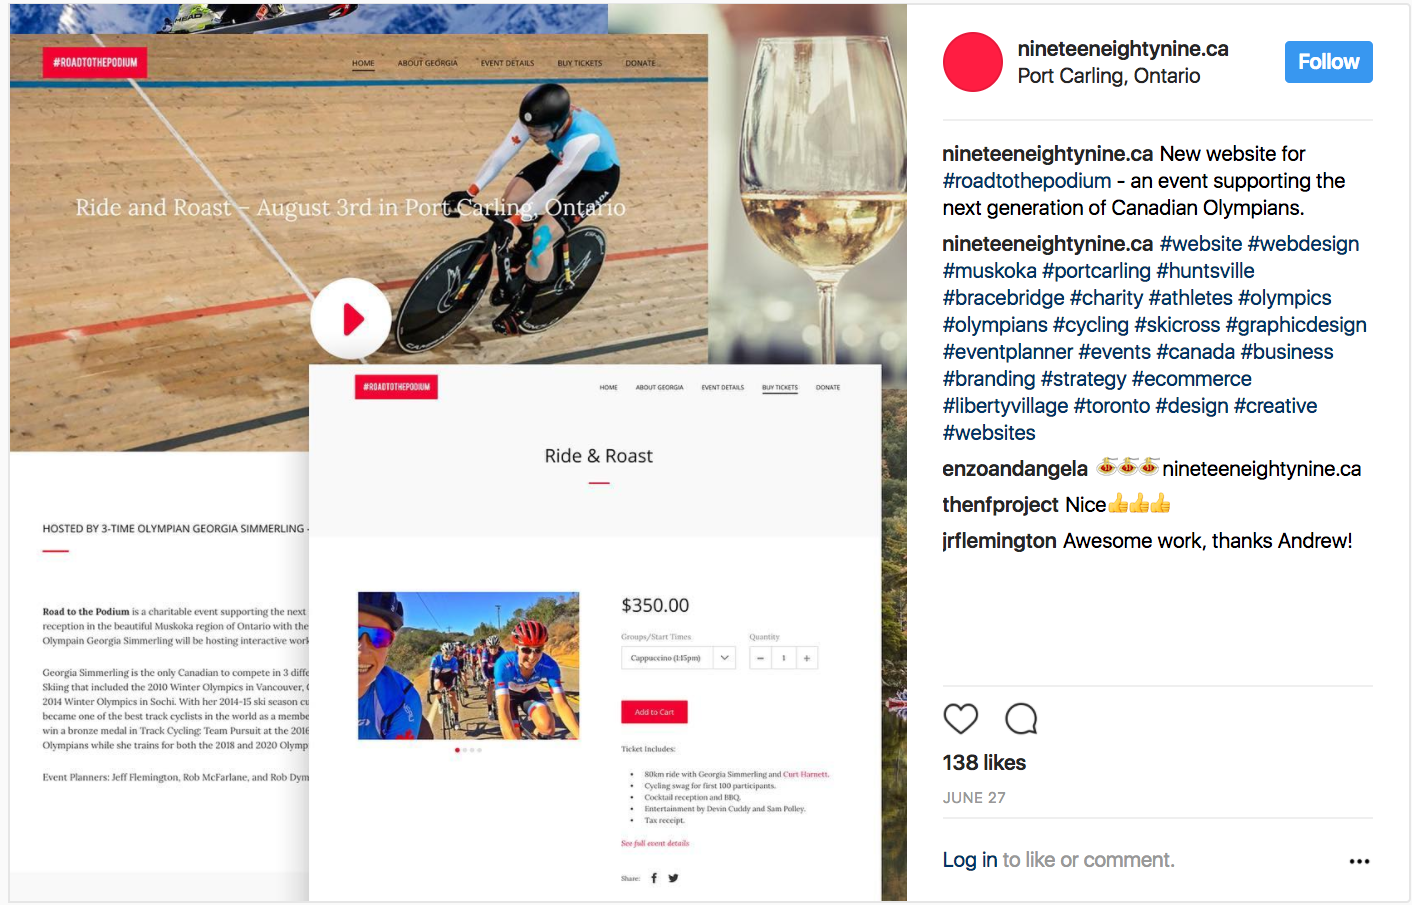 Actionable social media tips: Ninetenn Eighty Nine Instagram